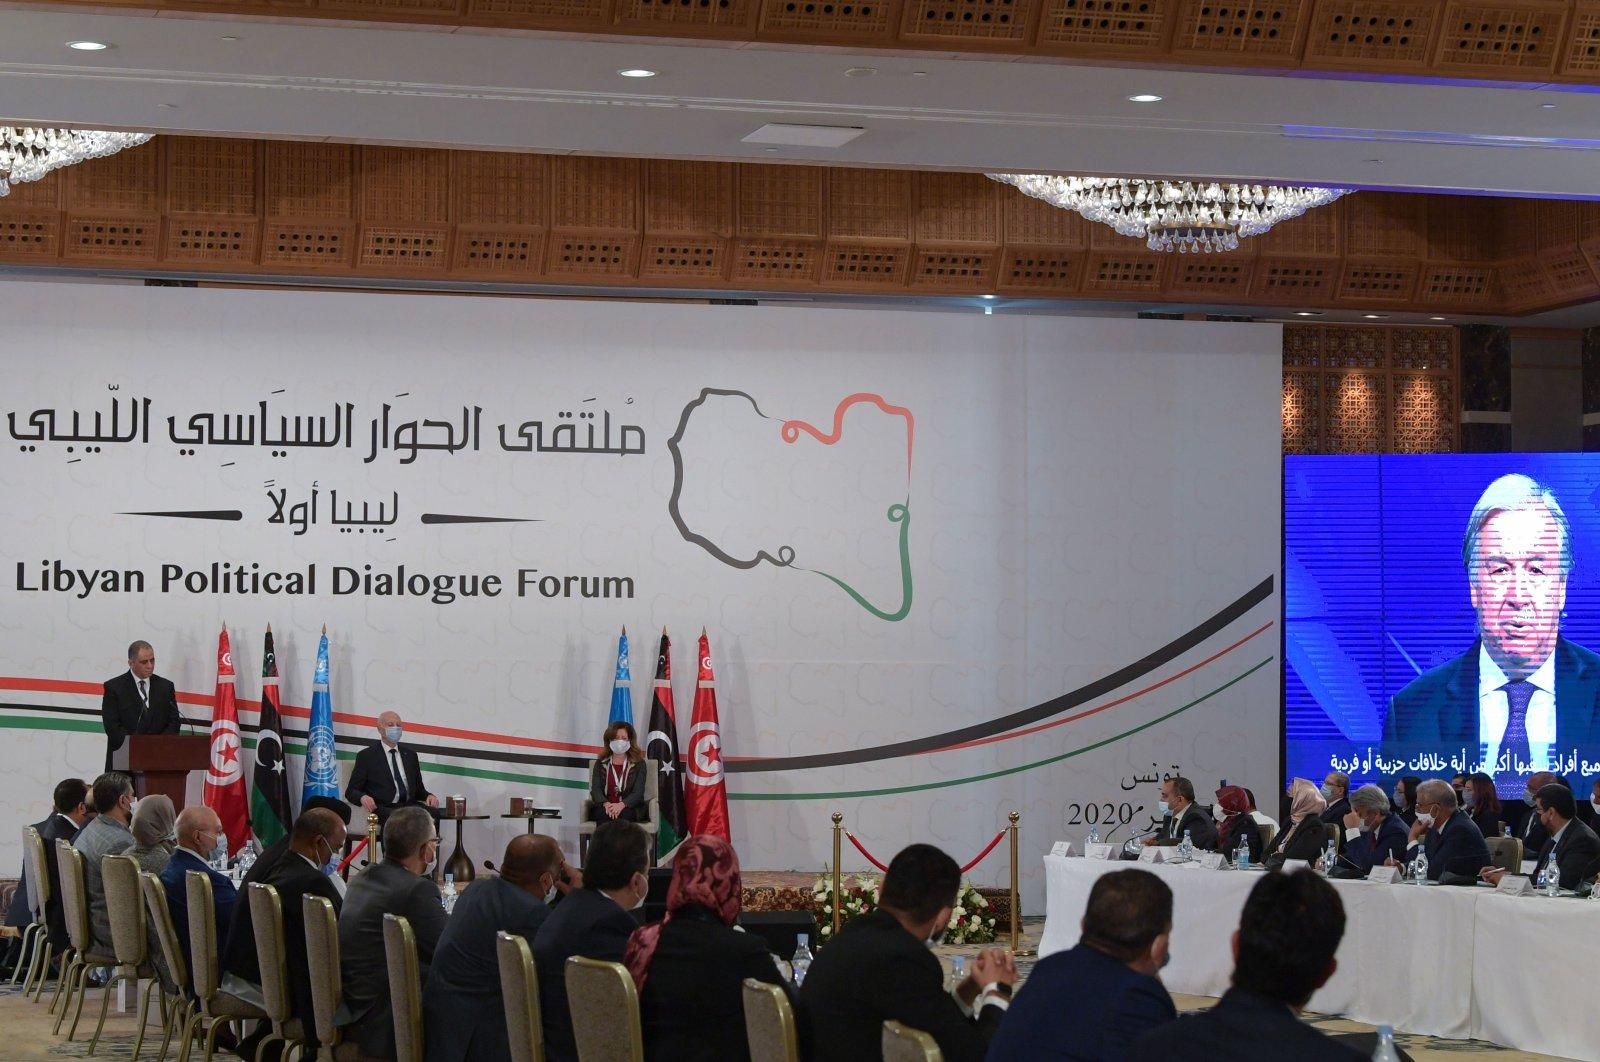 U.N. Secretary-General Antonio Guterres addresses participants at the opening of the Libyan Political Dialogue Forum hosted in Gammarth on the outskirts of Tunisia's capital Tunis, Nov. 9, 2020. (AFP Photo)